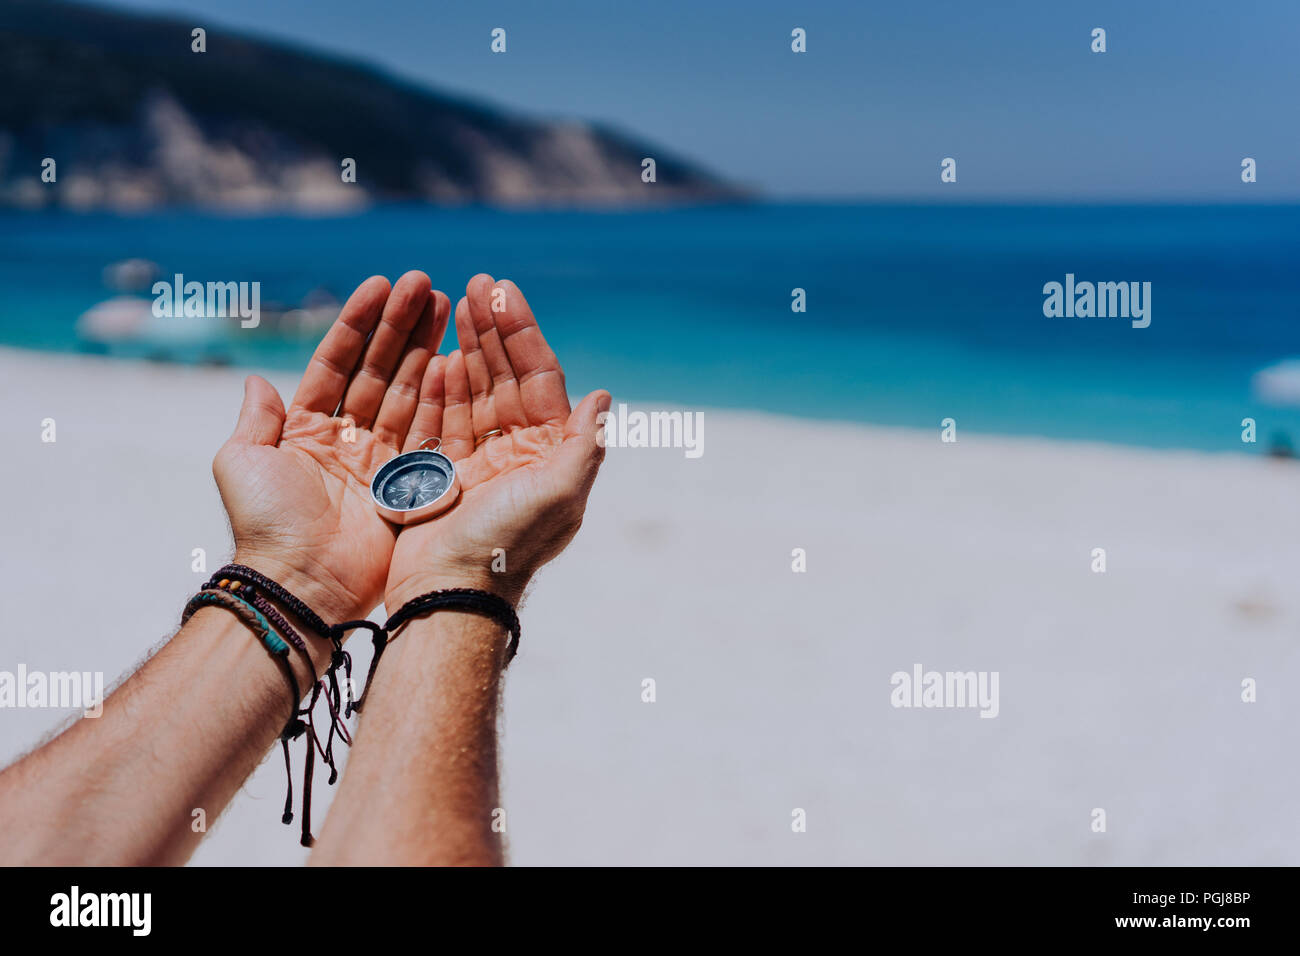 Open hand palms holding metal compass against sandy beach and blue sea. Searching your way concept. Point of view pov - Stock Image